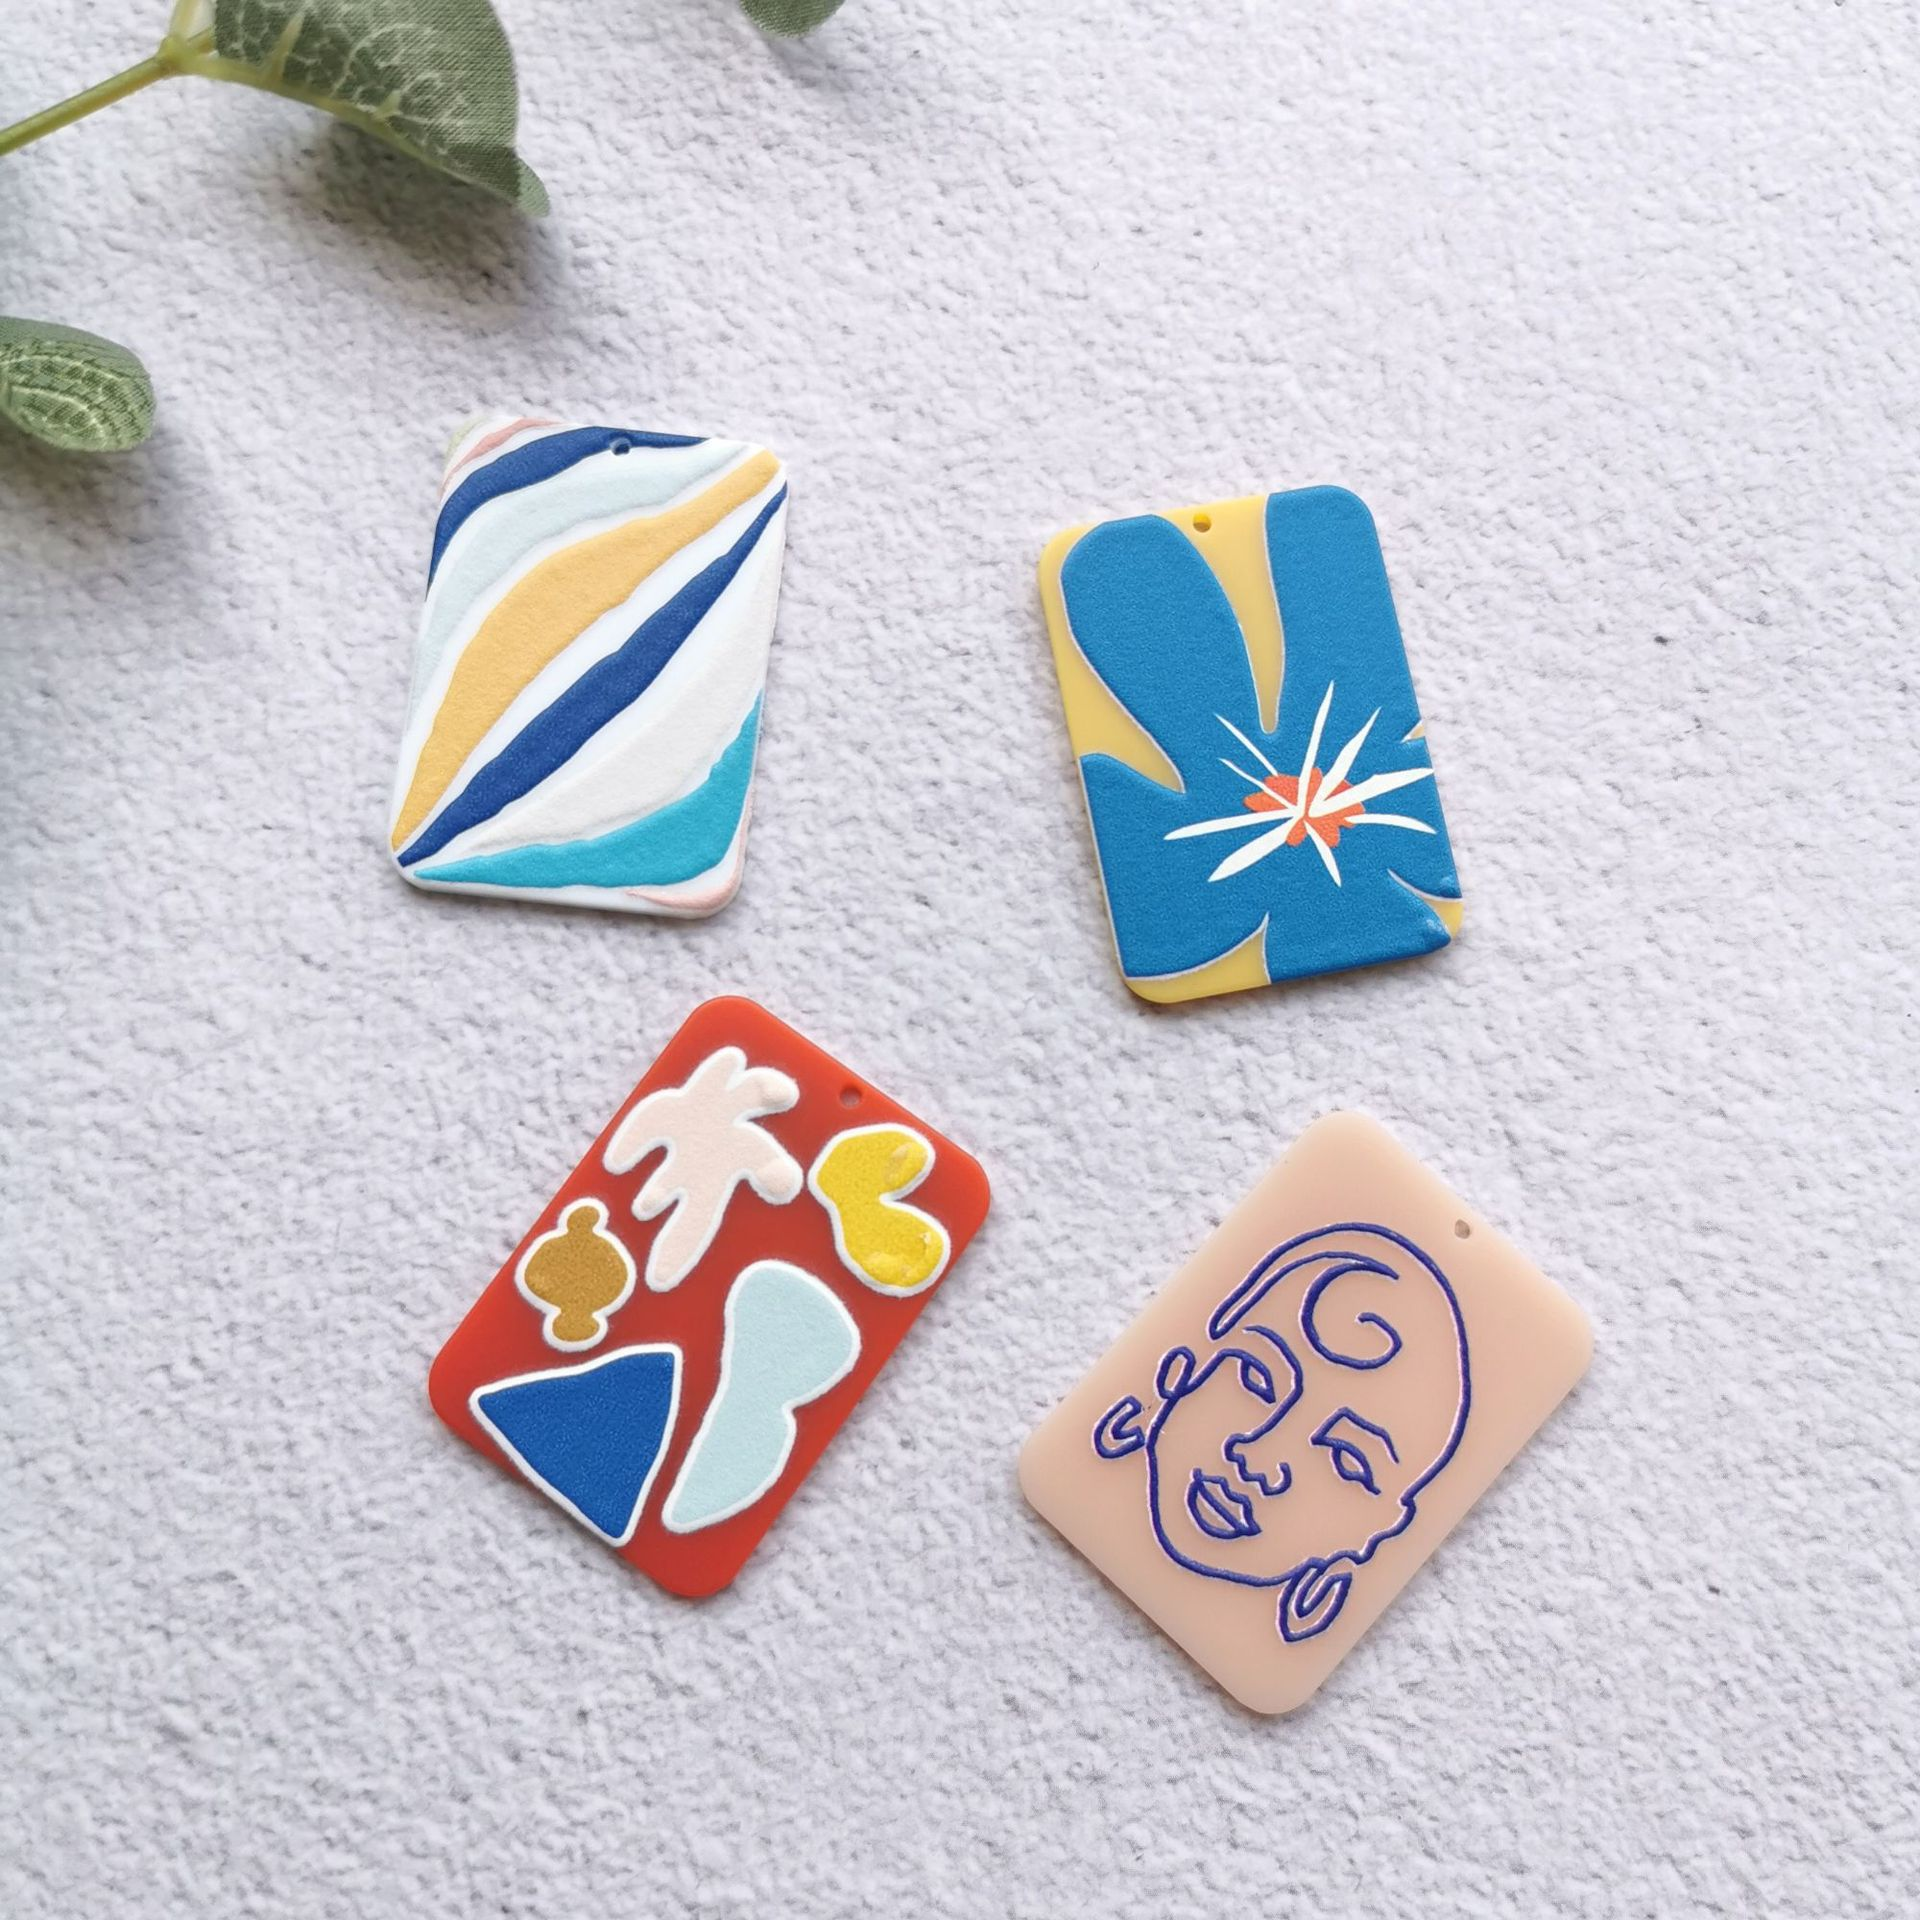 50PCS Flowers Painting Impressionism Jewelry Accessories Earrings Connectors DIY Pendant Jewelry Findings Components Charms